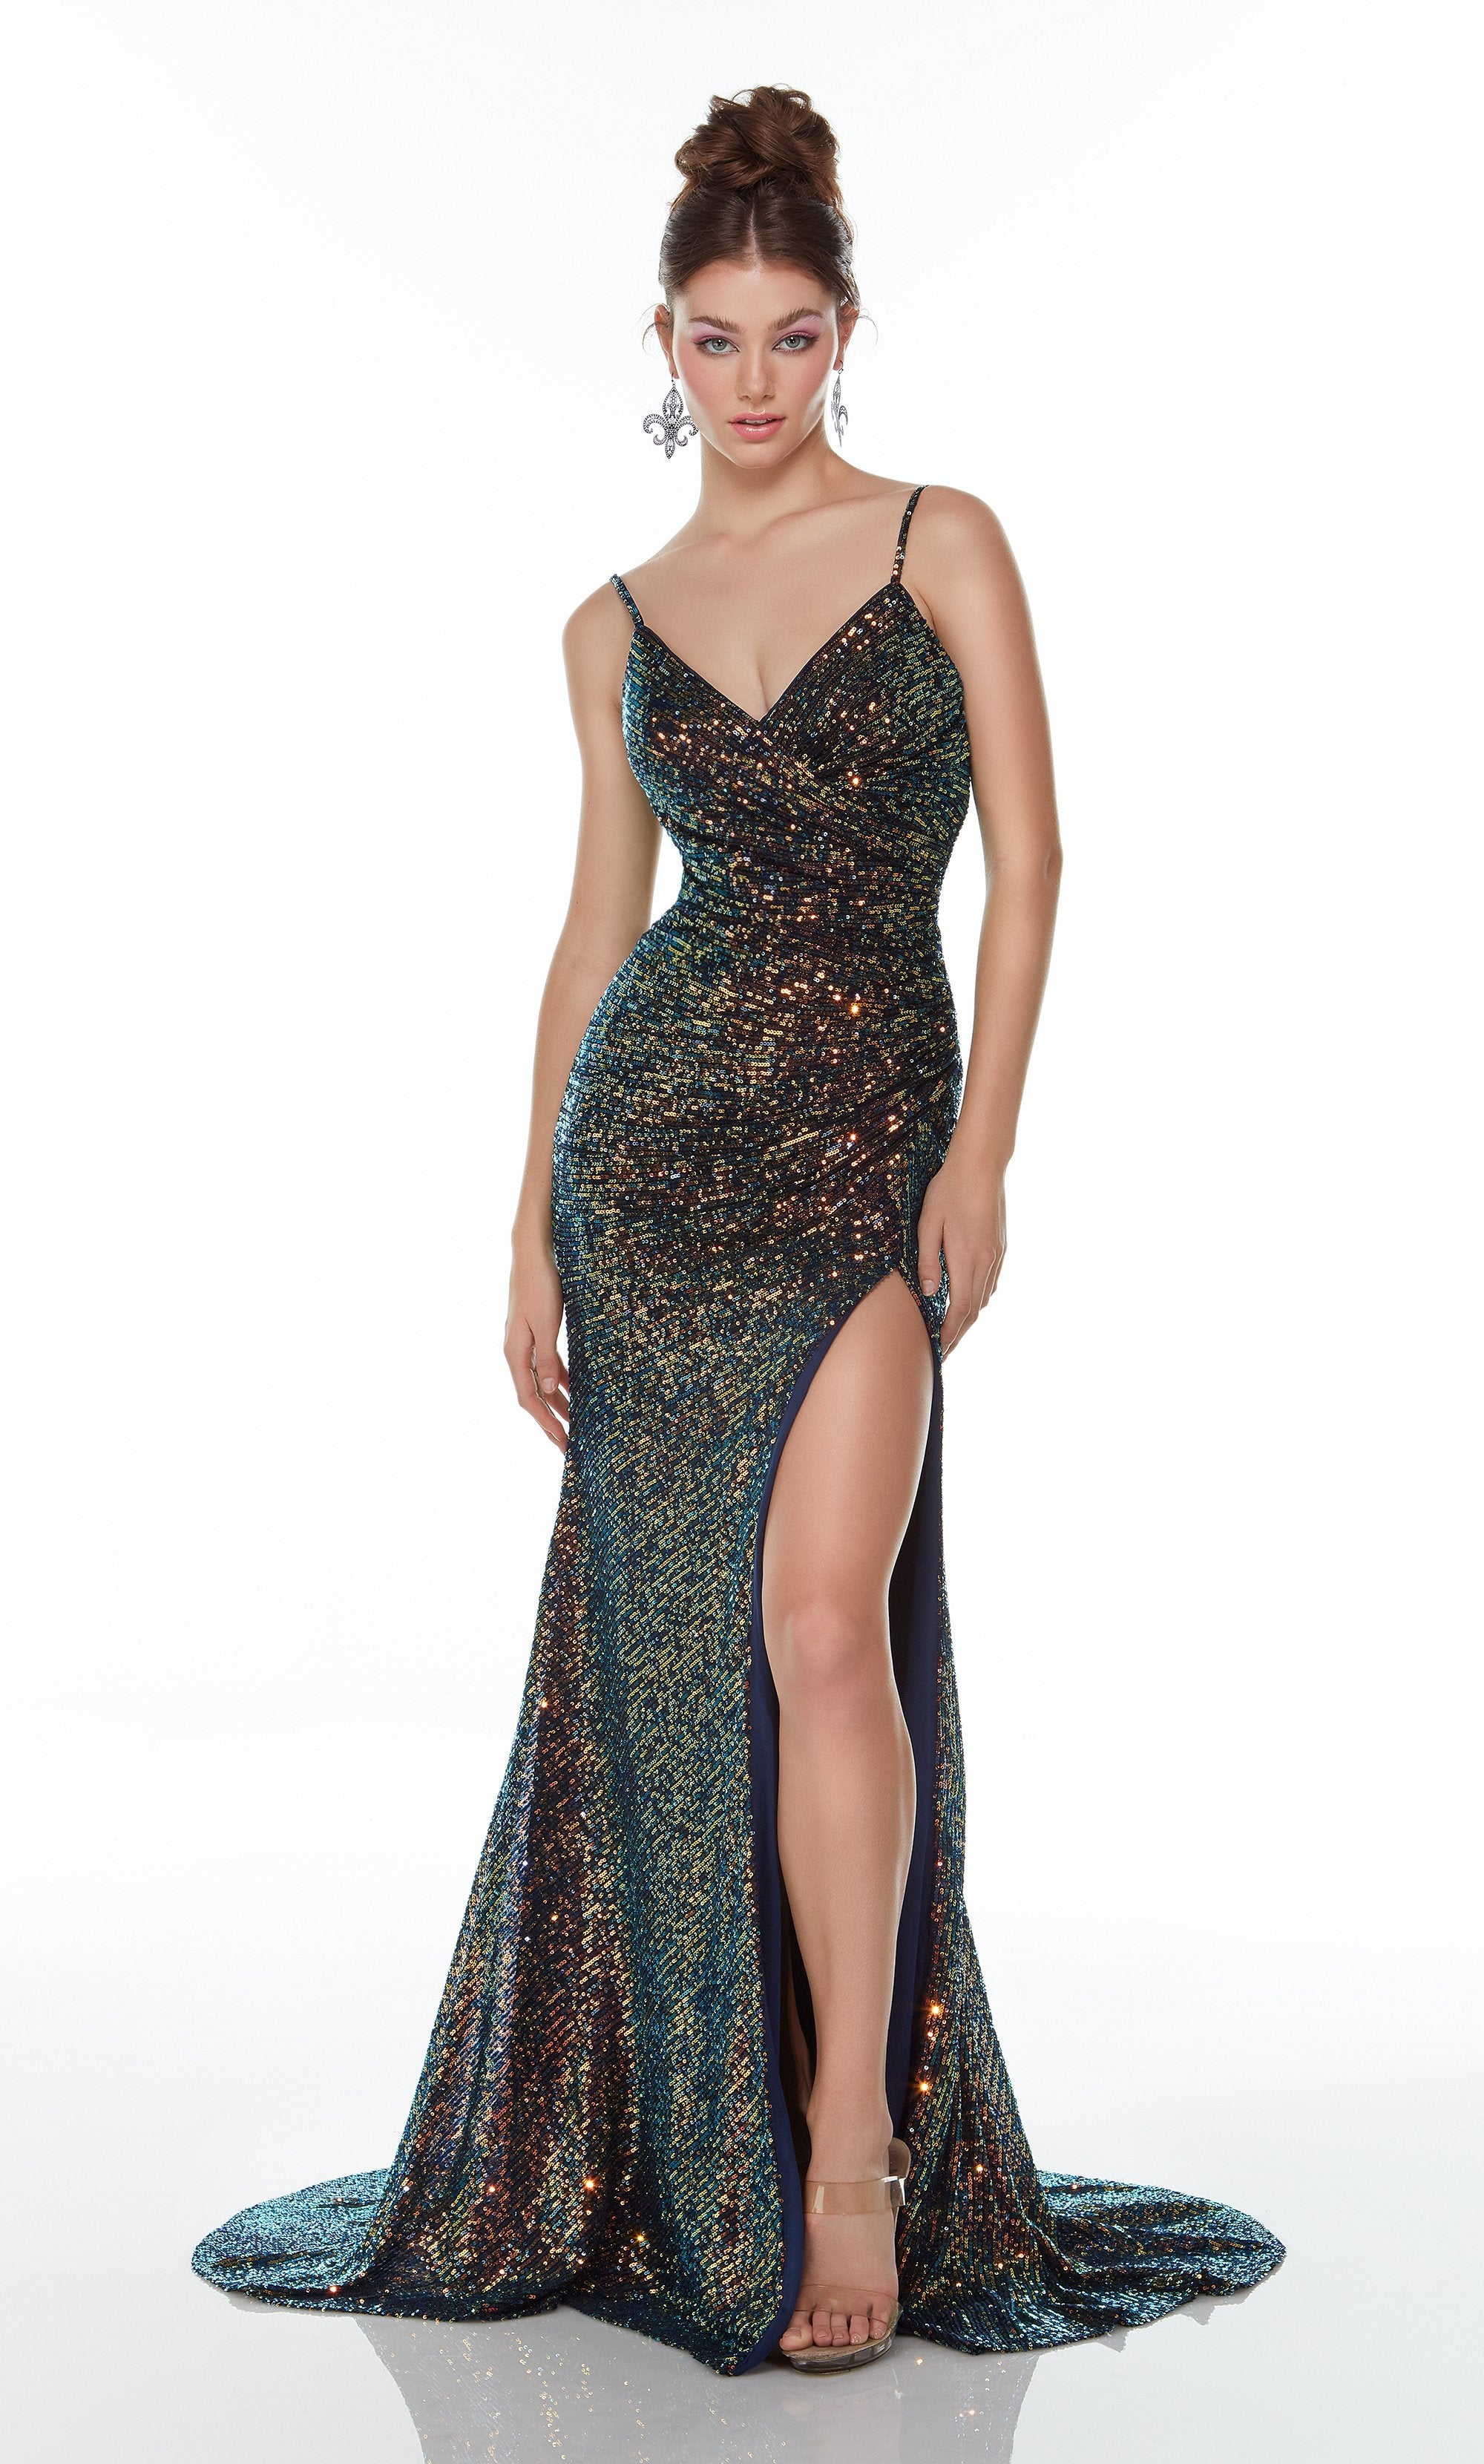 Fully iridescent sequin embellished evening dress with a sweetheart neckline and high slit